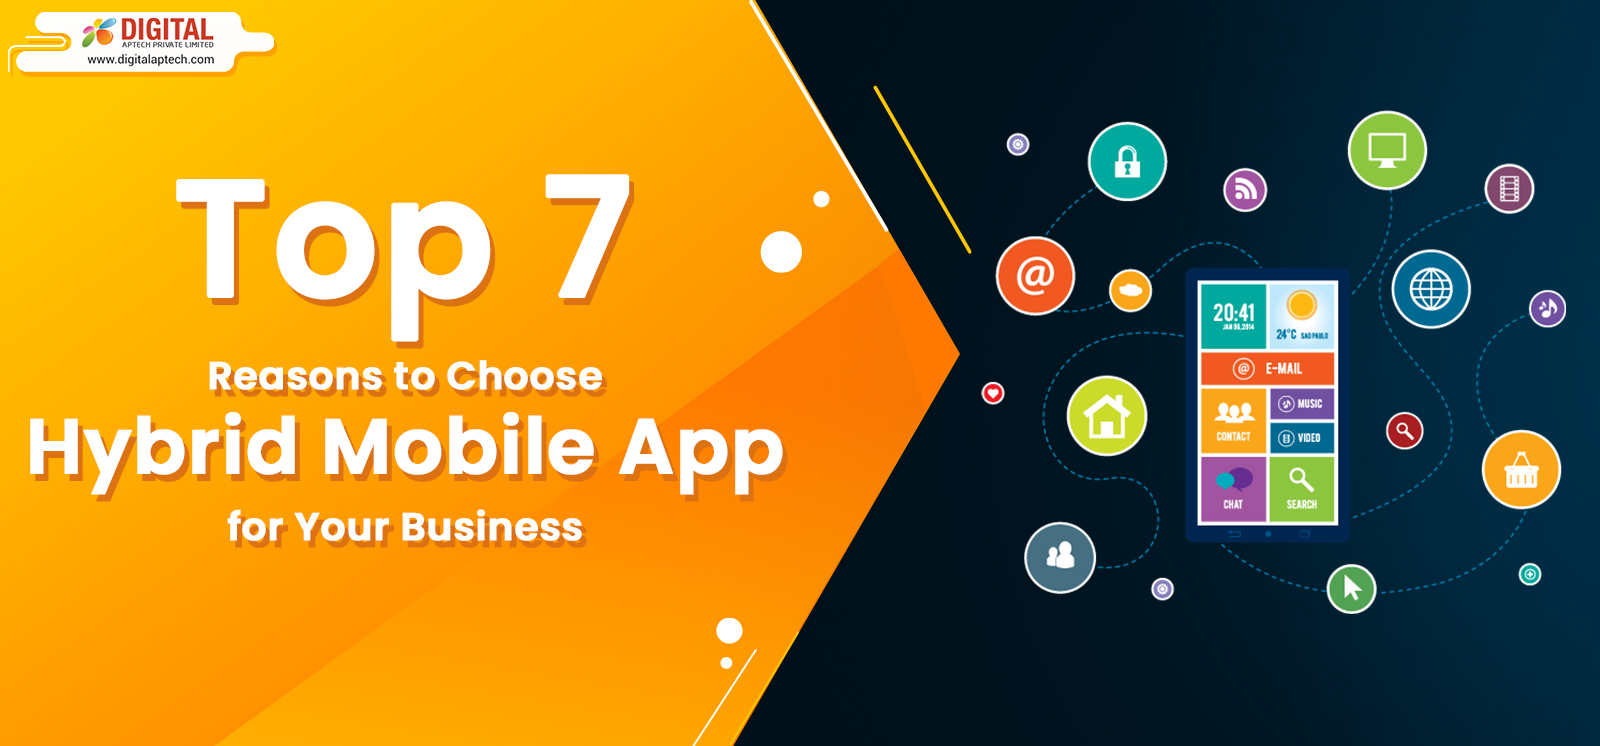 Top 7 Reasons to Choose Hybrid Mobile App for Your Business